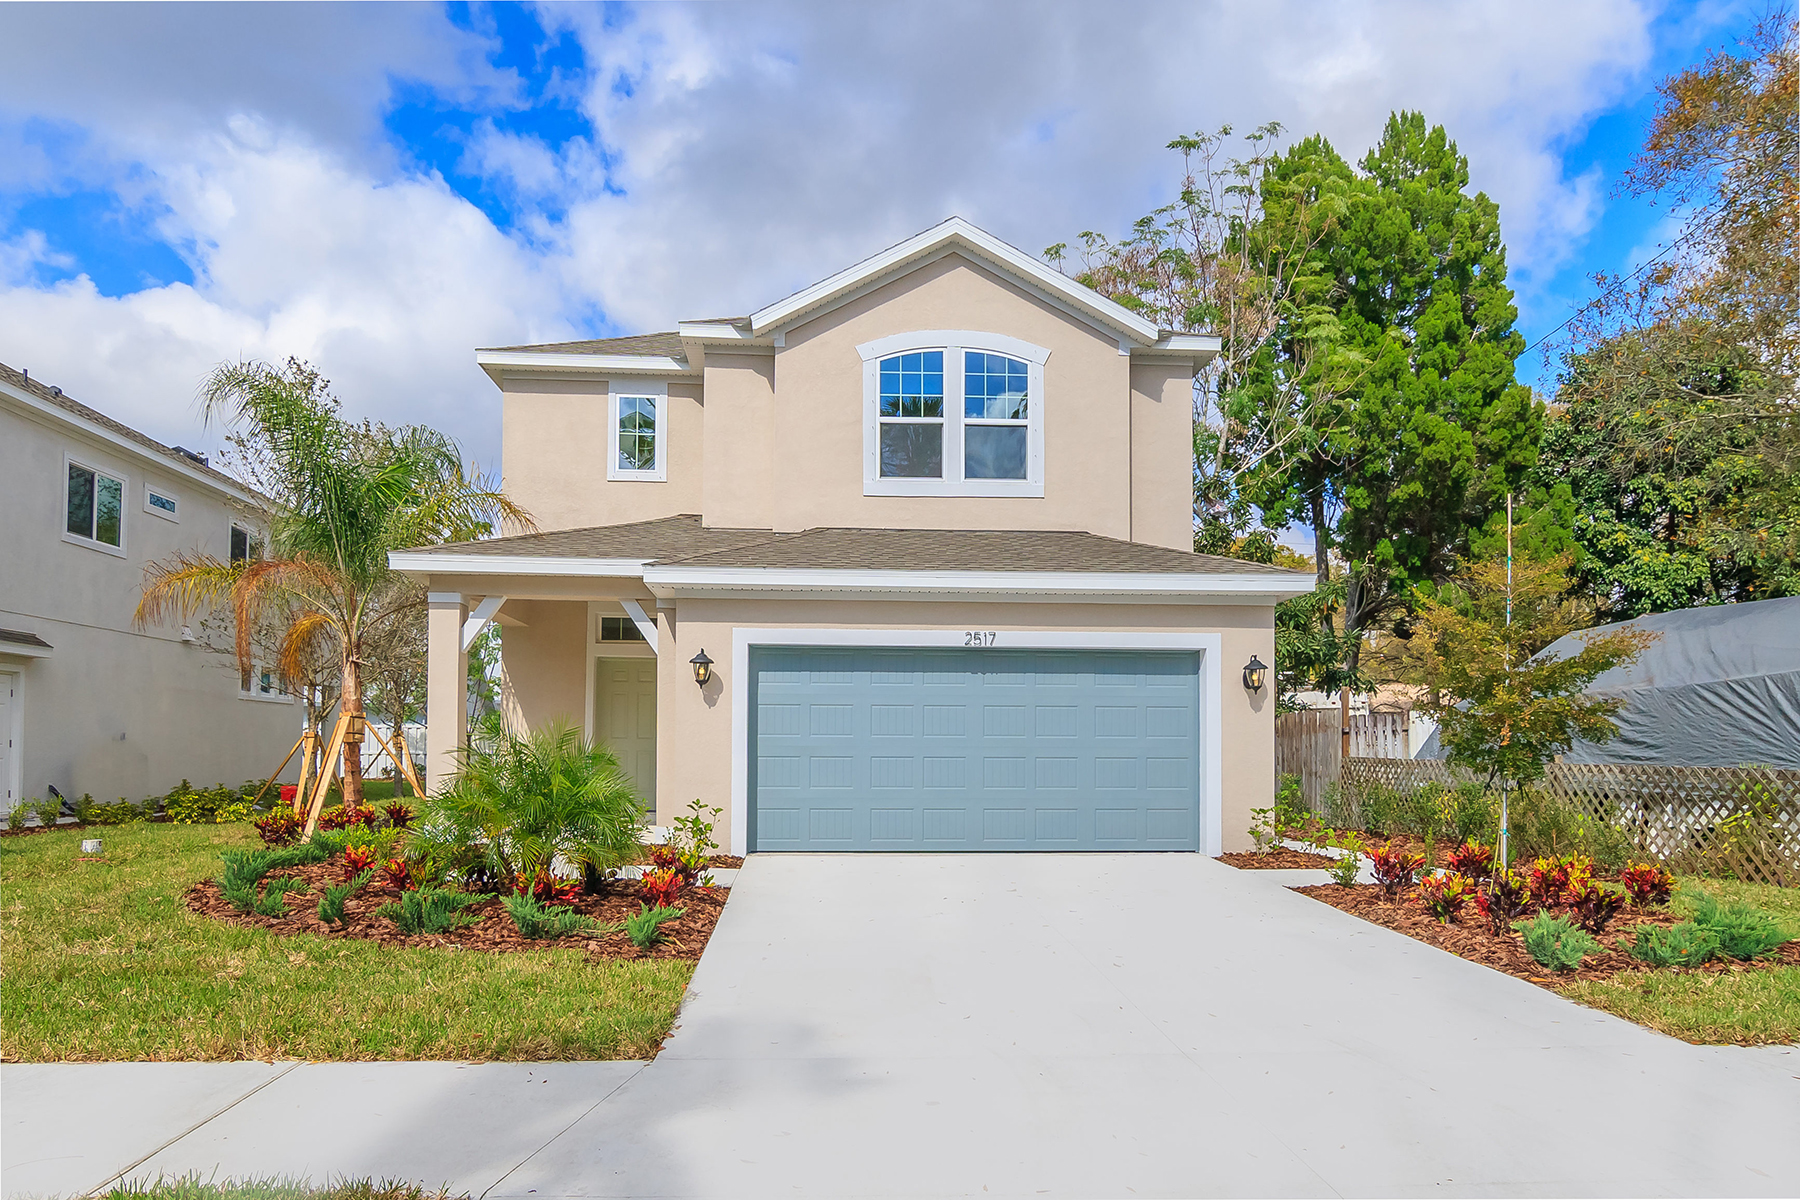 Single Family Home for Sale at RUSTIC PARK 2517 Prospect St Sarasota, Florida, 34239 United States